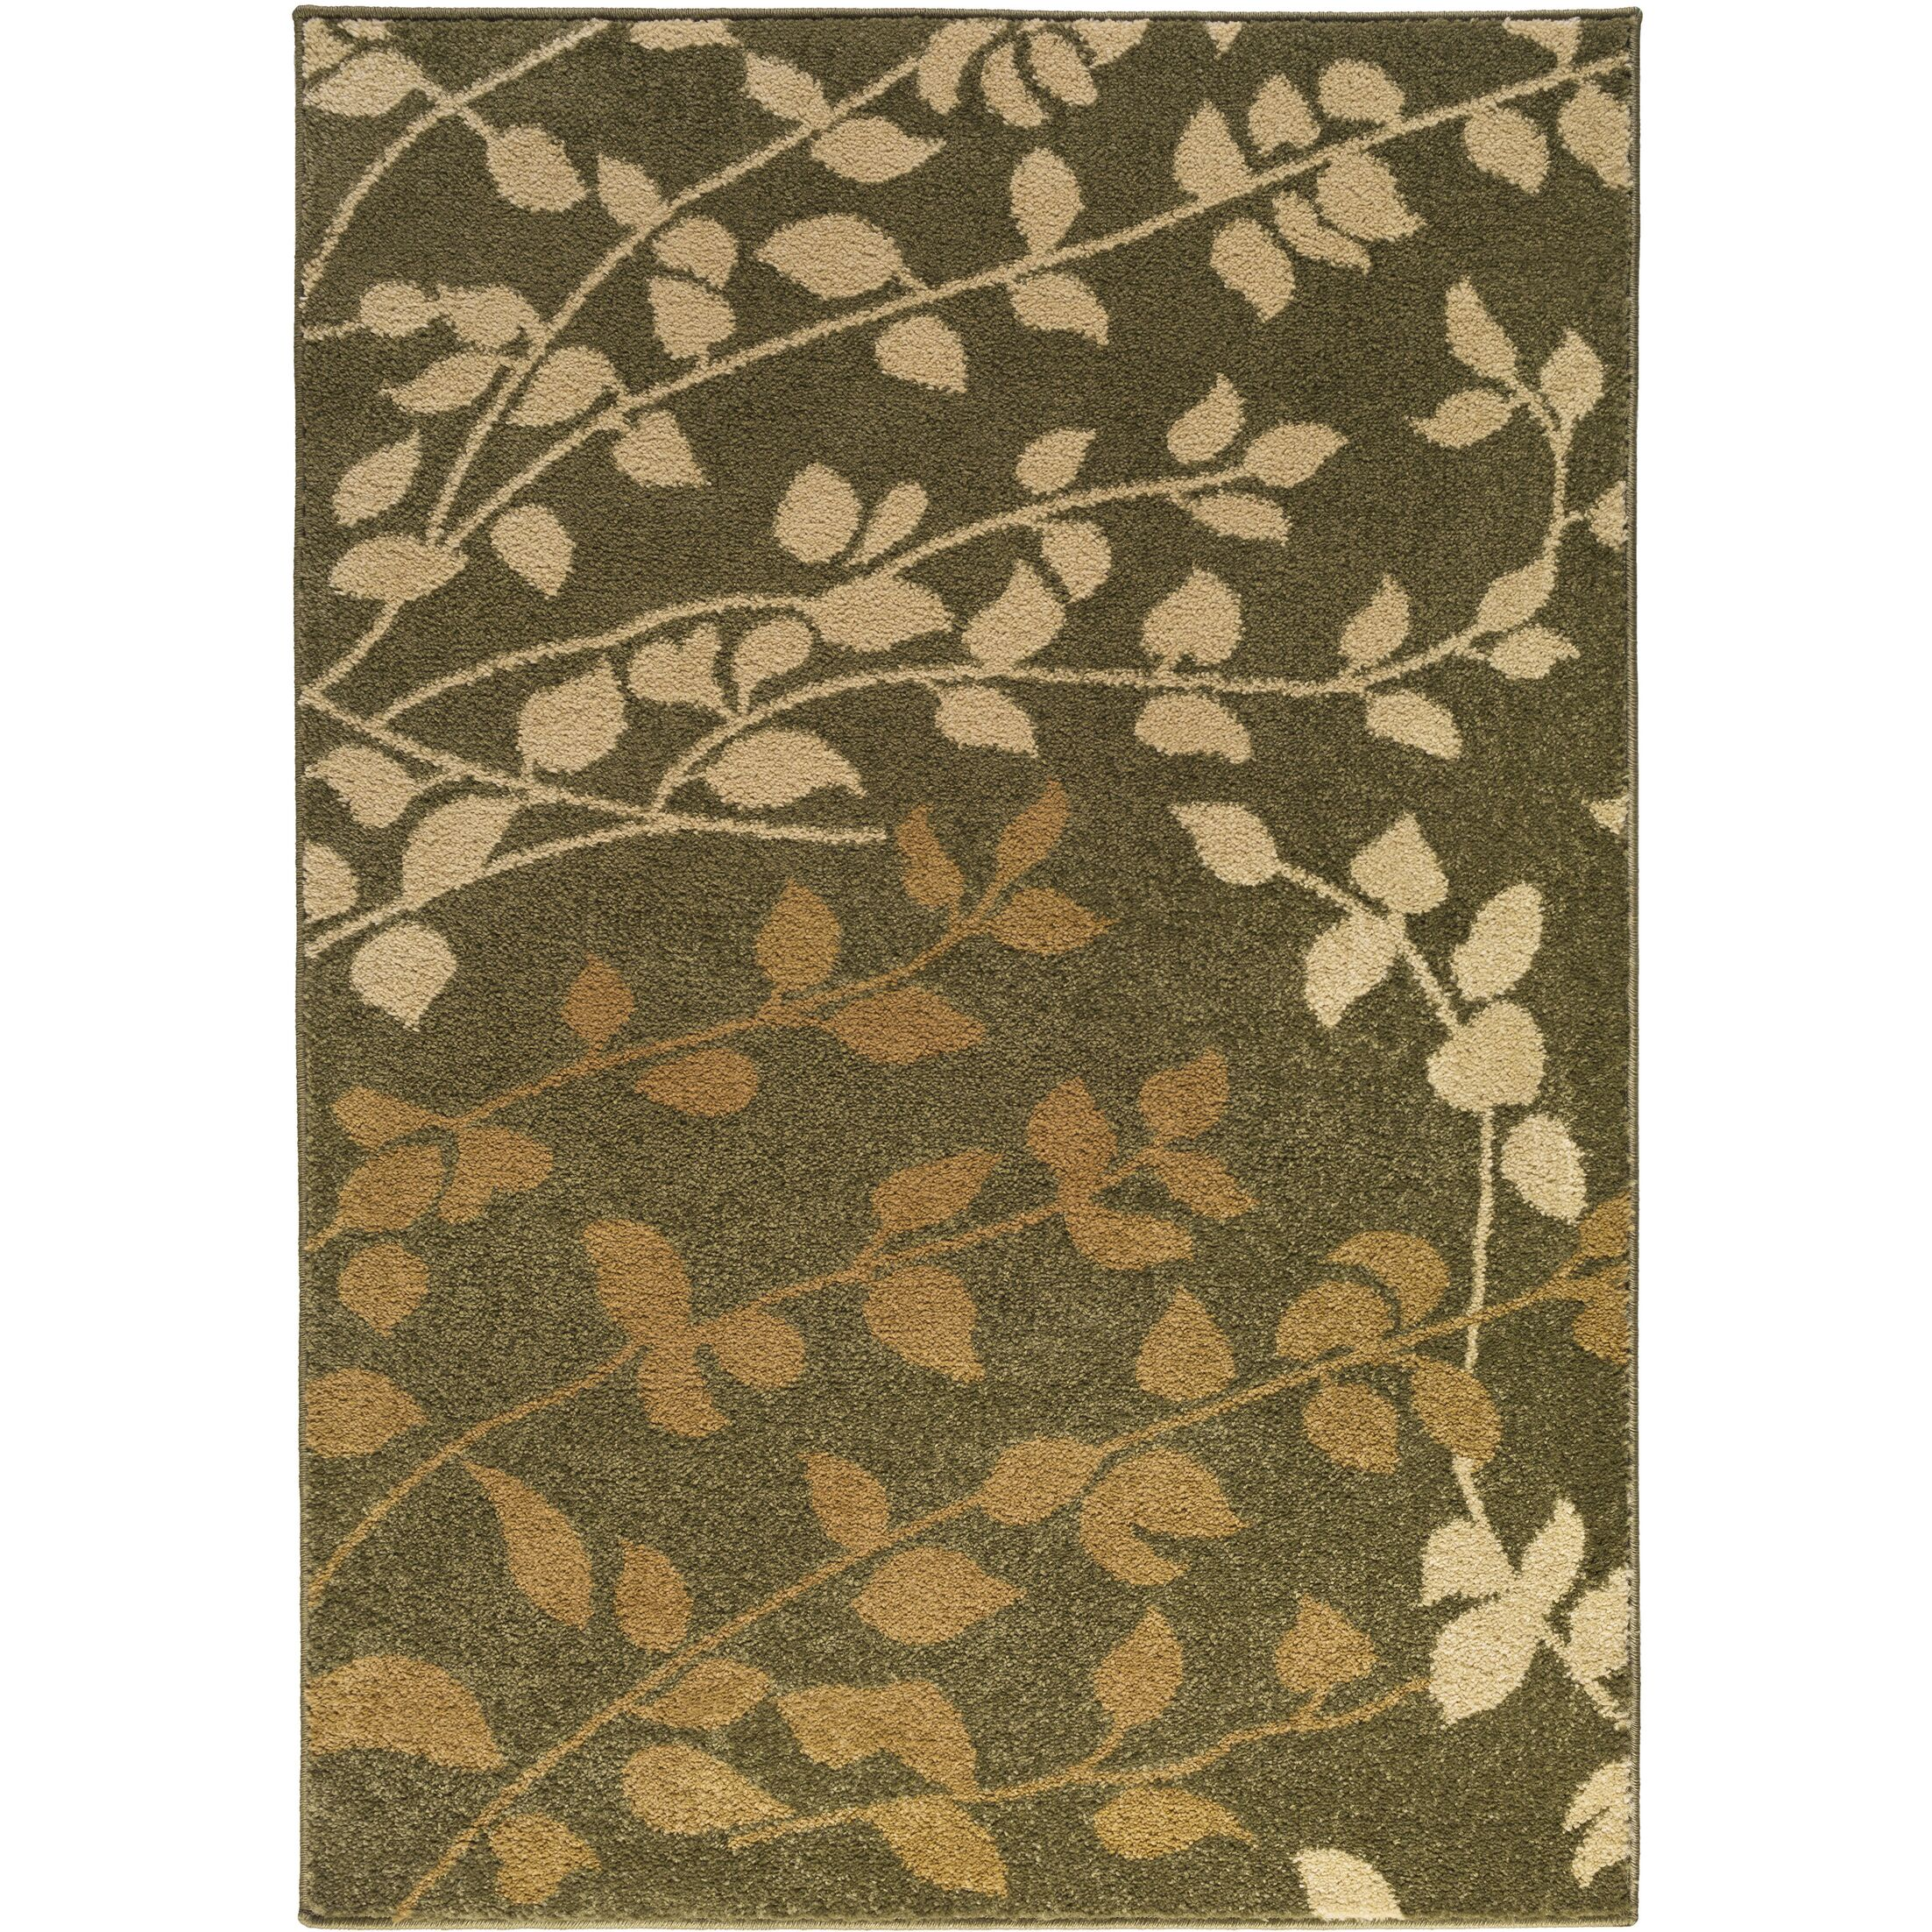 Demetria Floral and Plants Multi Area Rug Rug Size: Rectangle 5'2